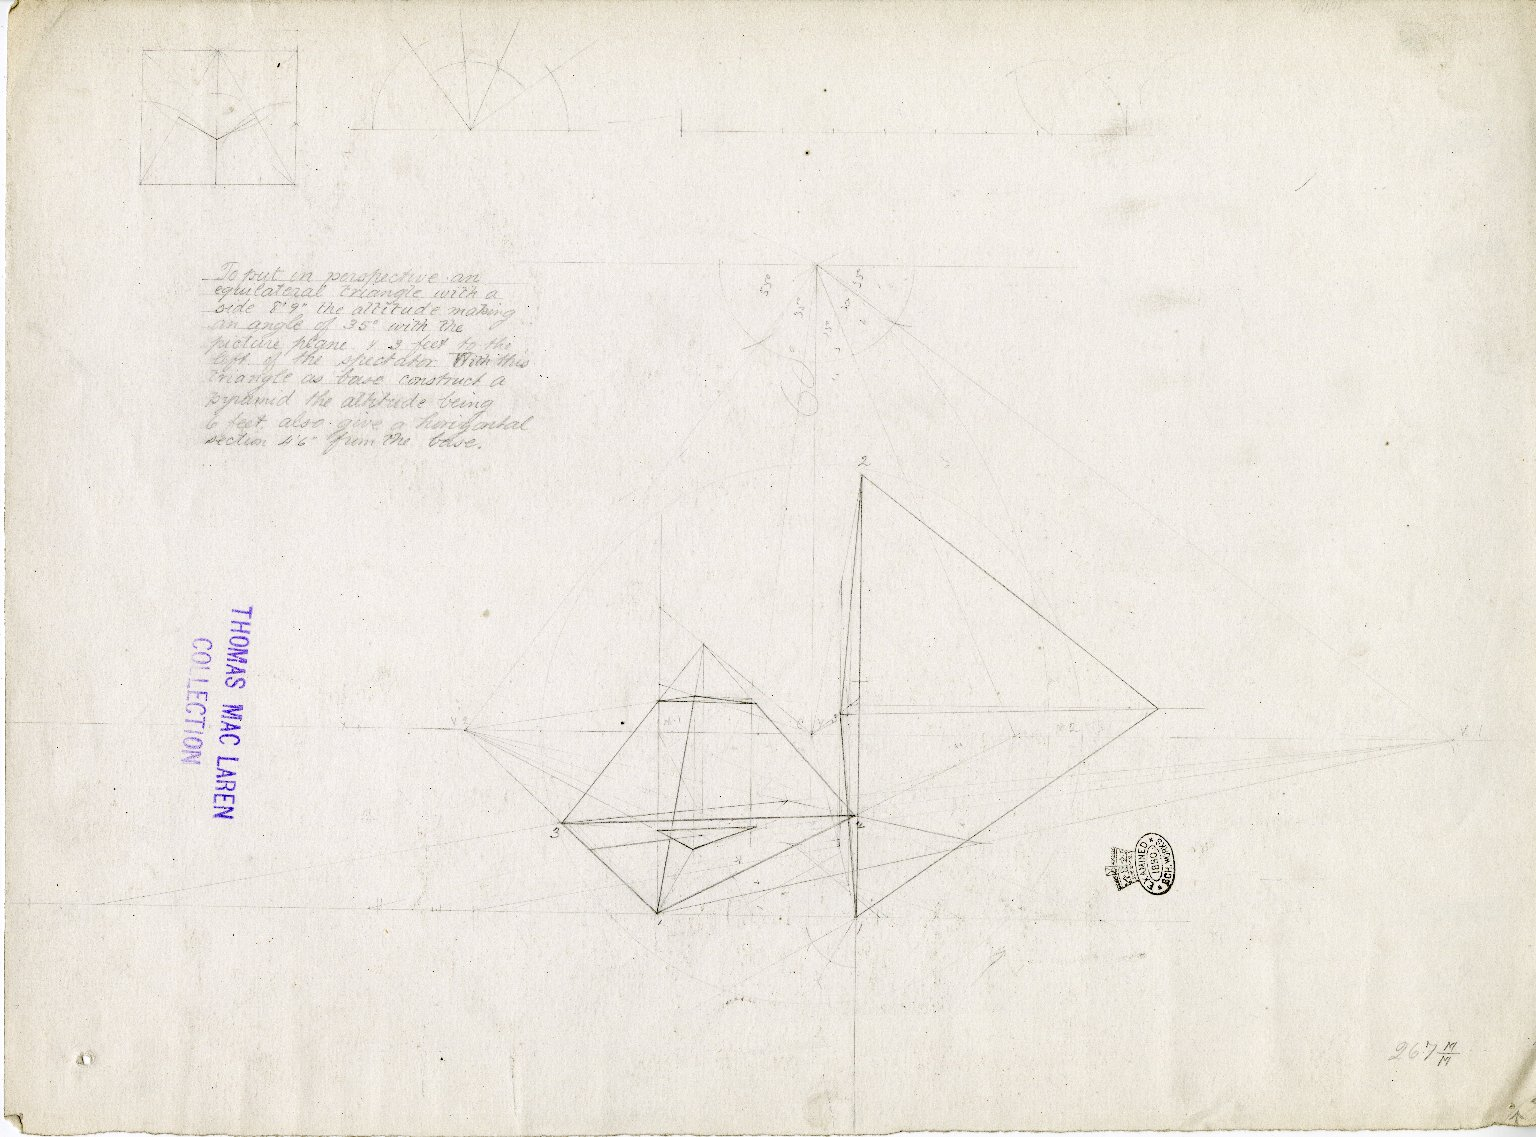 Perspective drawing of equilateral triangles